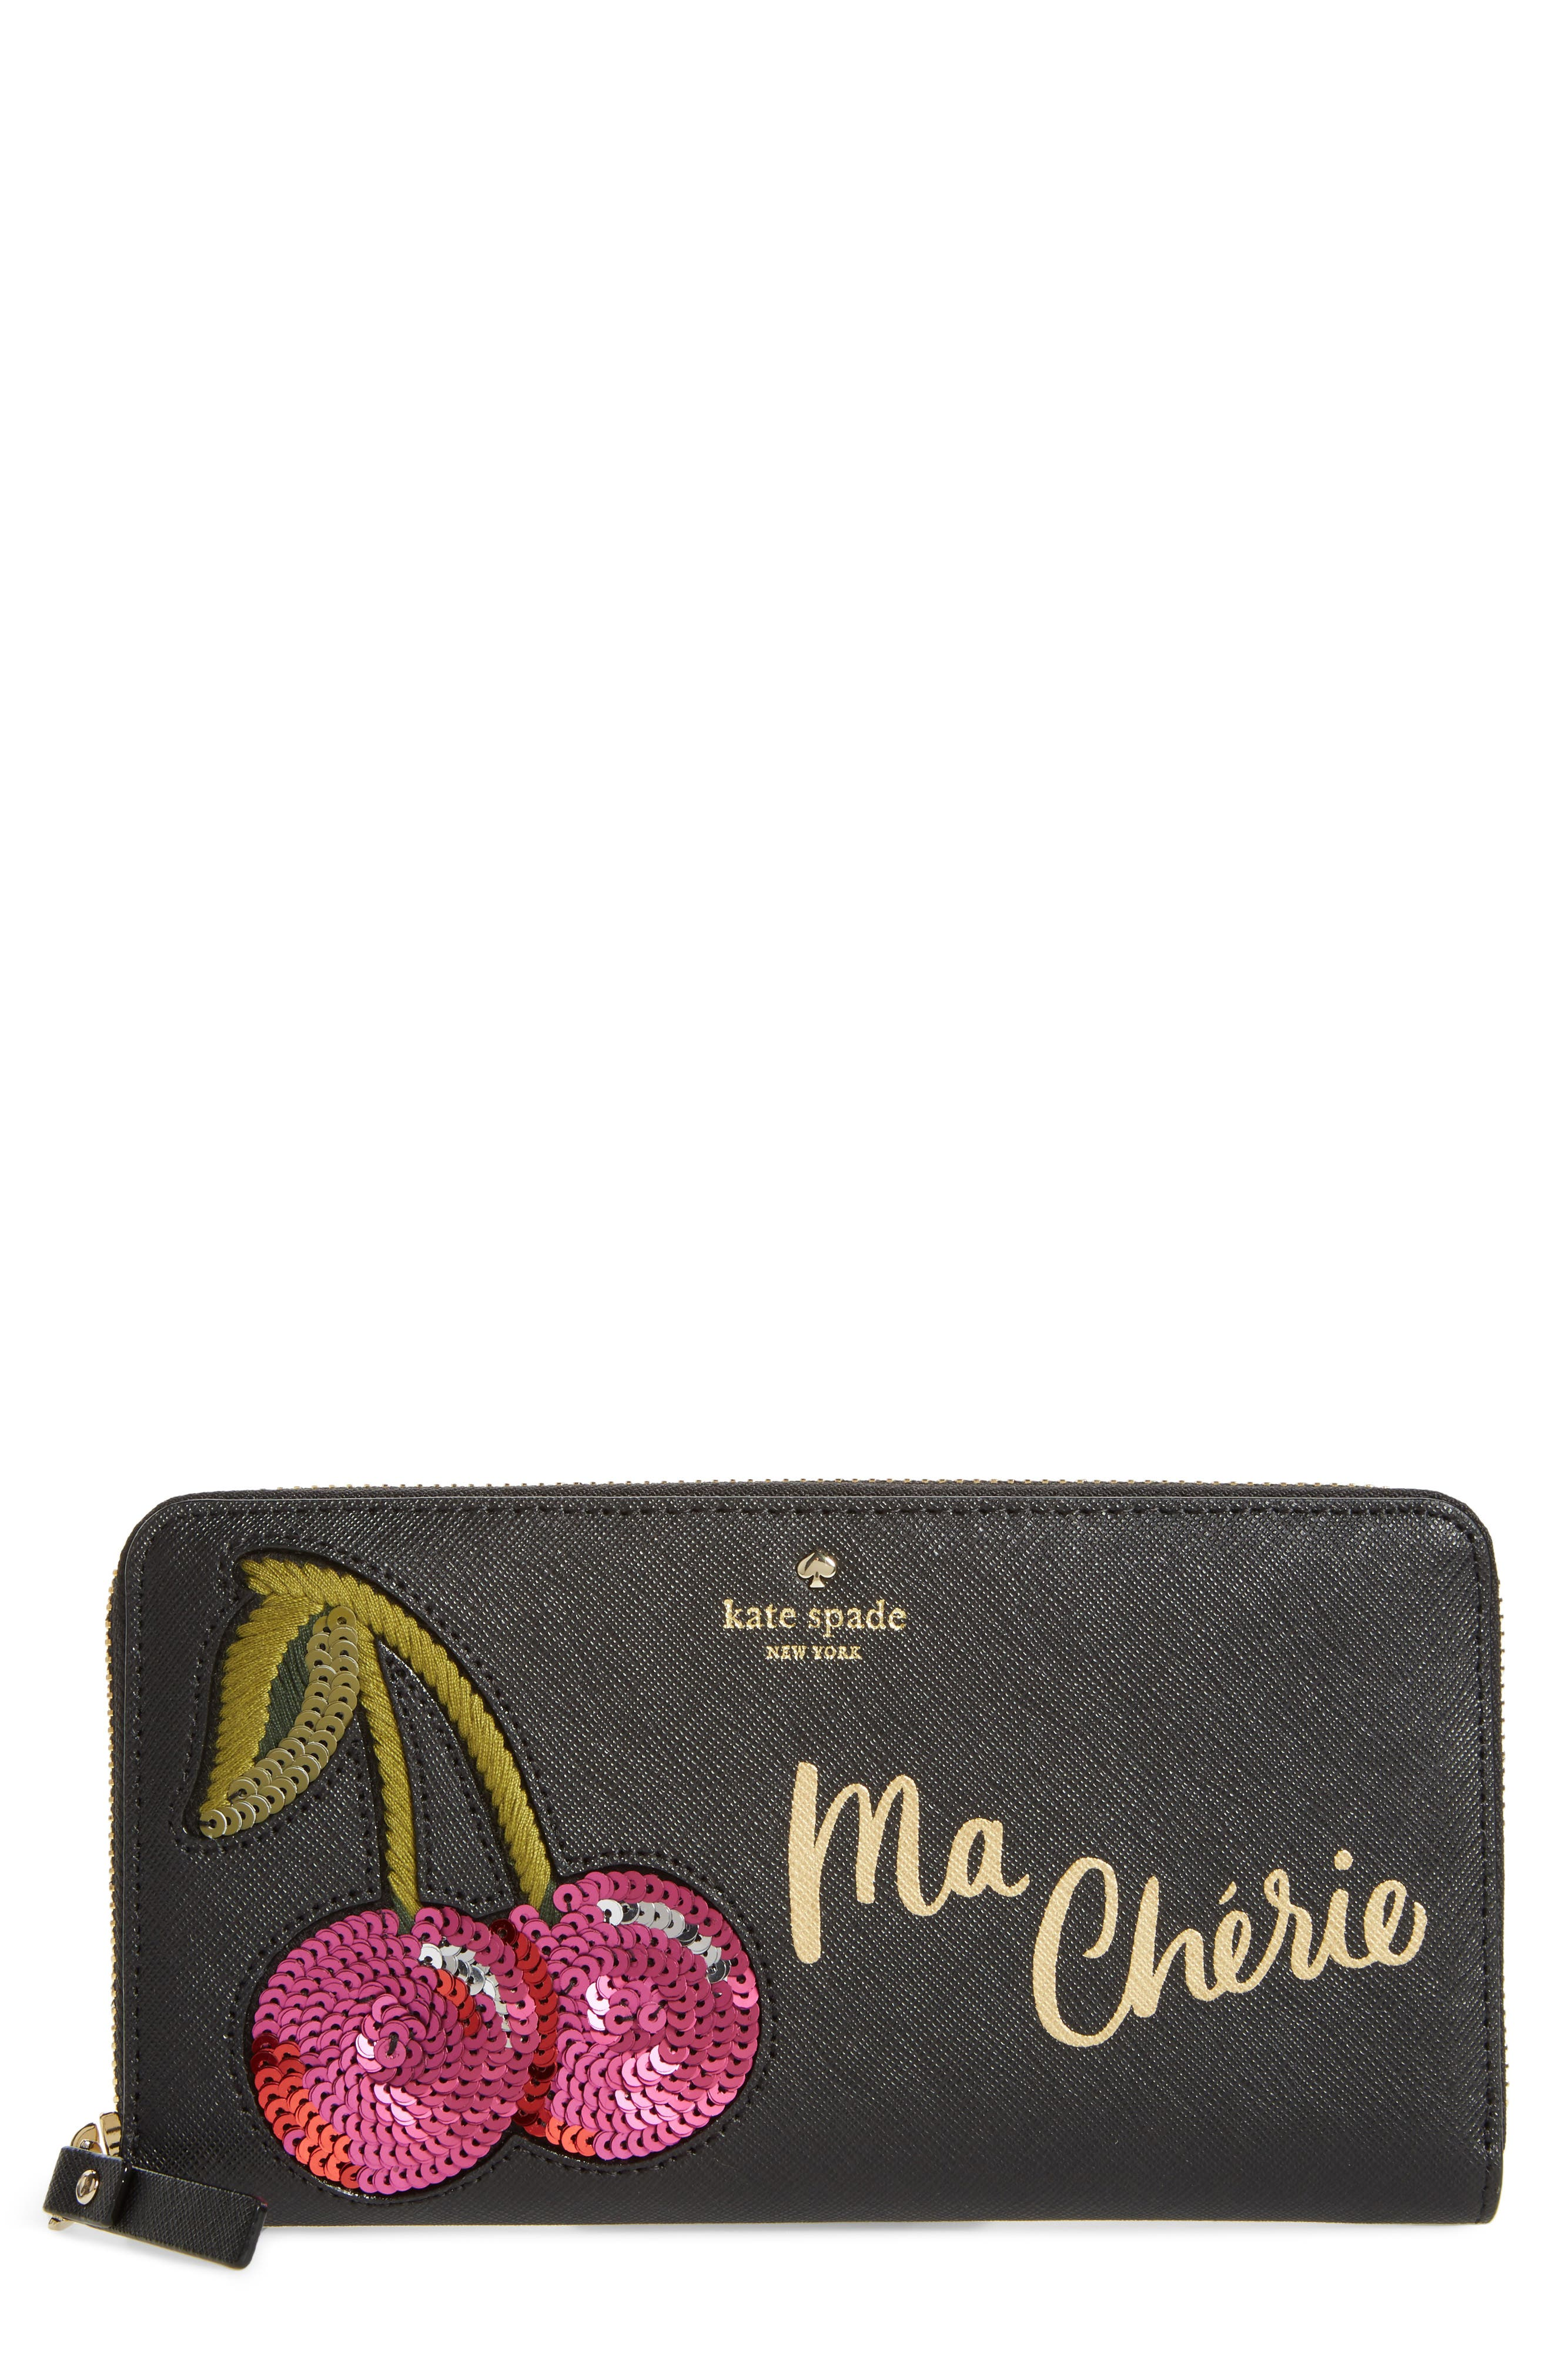 Main Image - kate spade new york ma chérie - lacey appliqué leather wallet